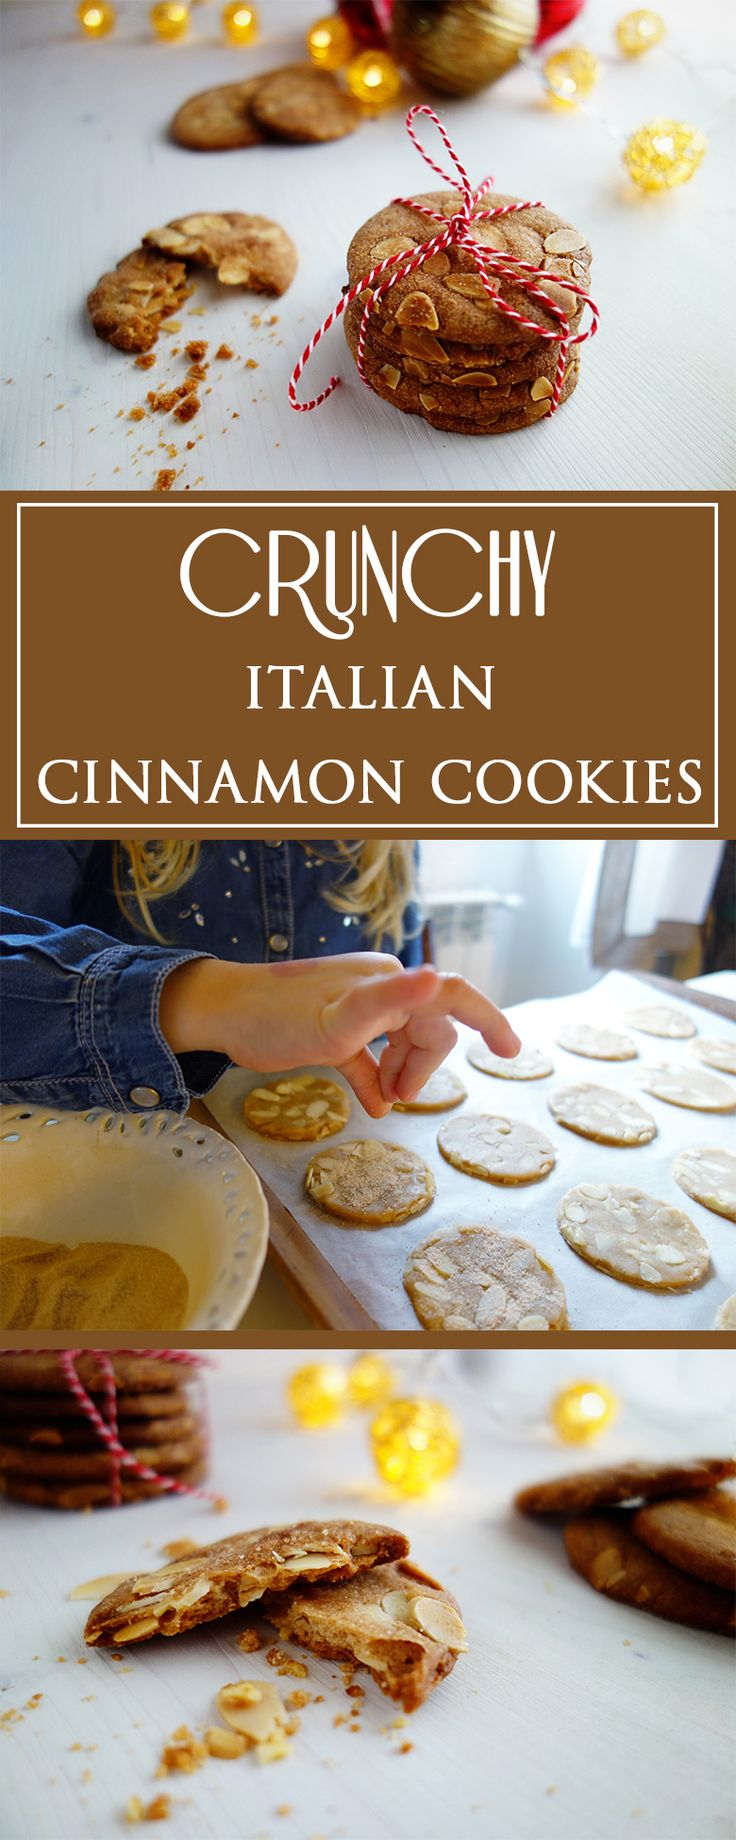 Crunchy Cinnamon Cookies - a simple, irresistably delicious recipe for italian cookies. Also great to make together with kids & for the Christmas season! 🍪🇮🇹🎄| cucina-con-amore.de